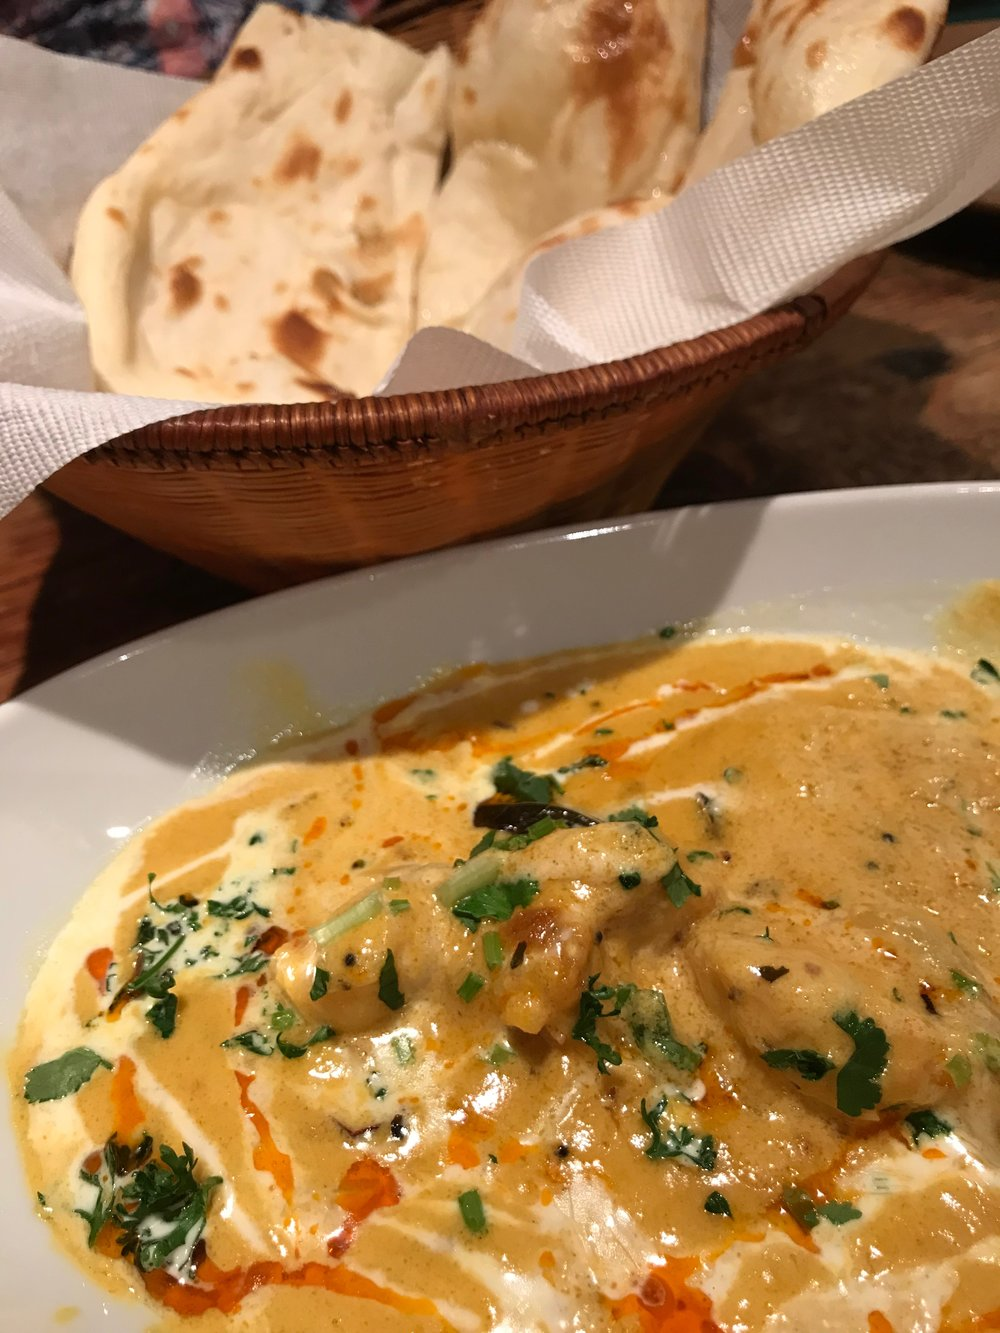 Shrimp curry with the best naan (we ordered two more baskets because it was perfection)